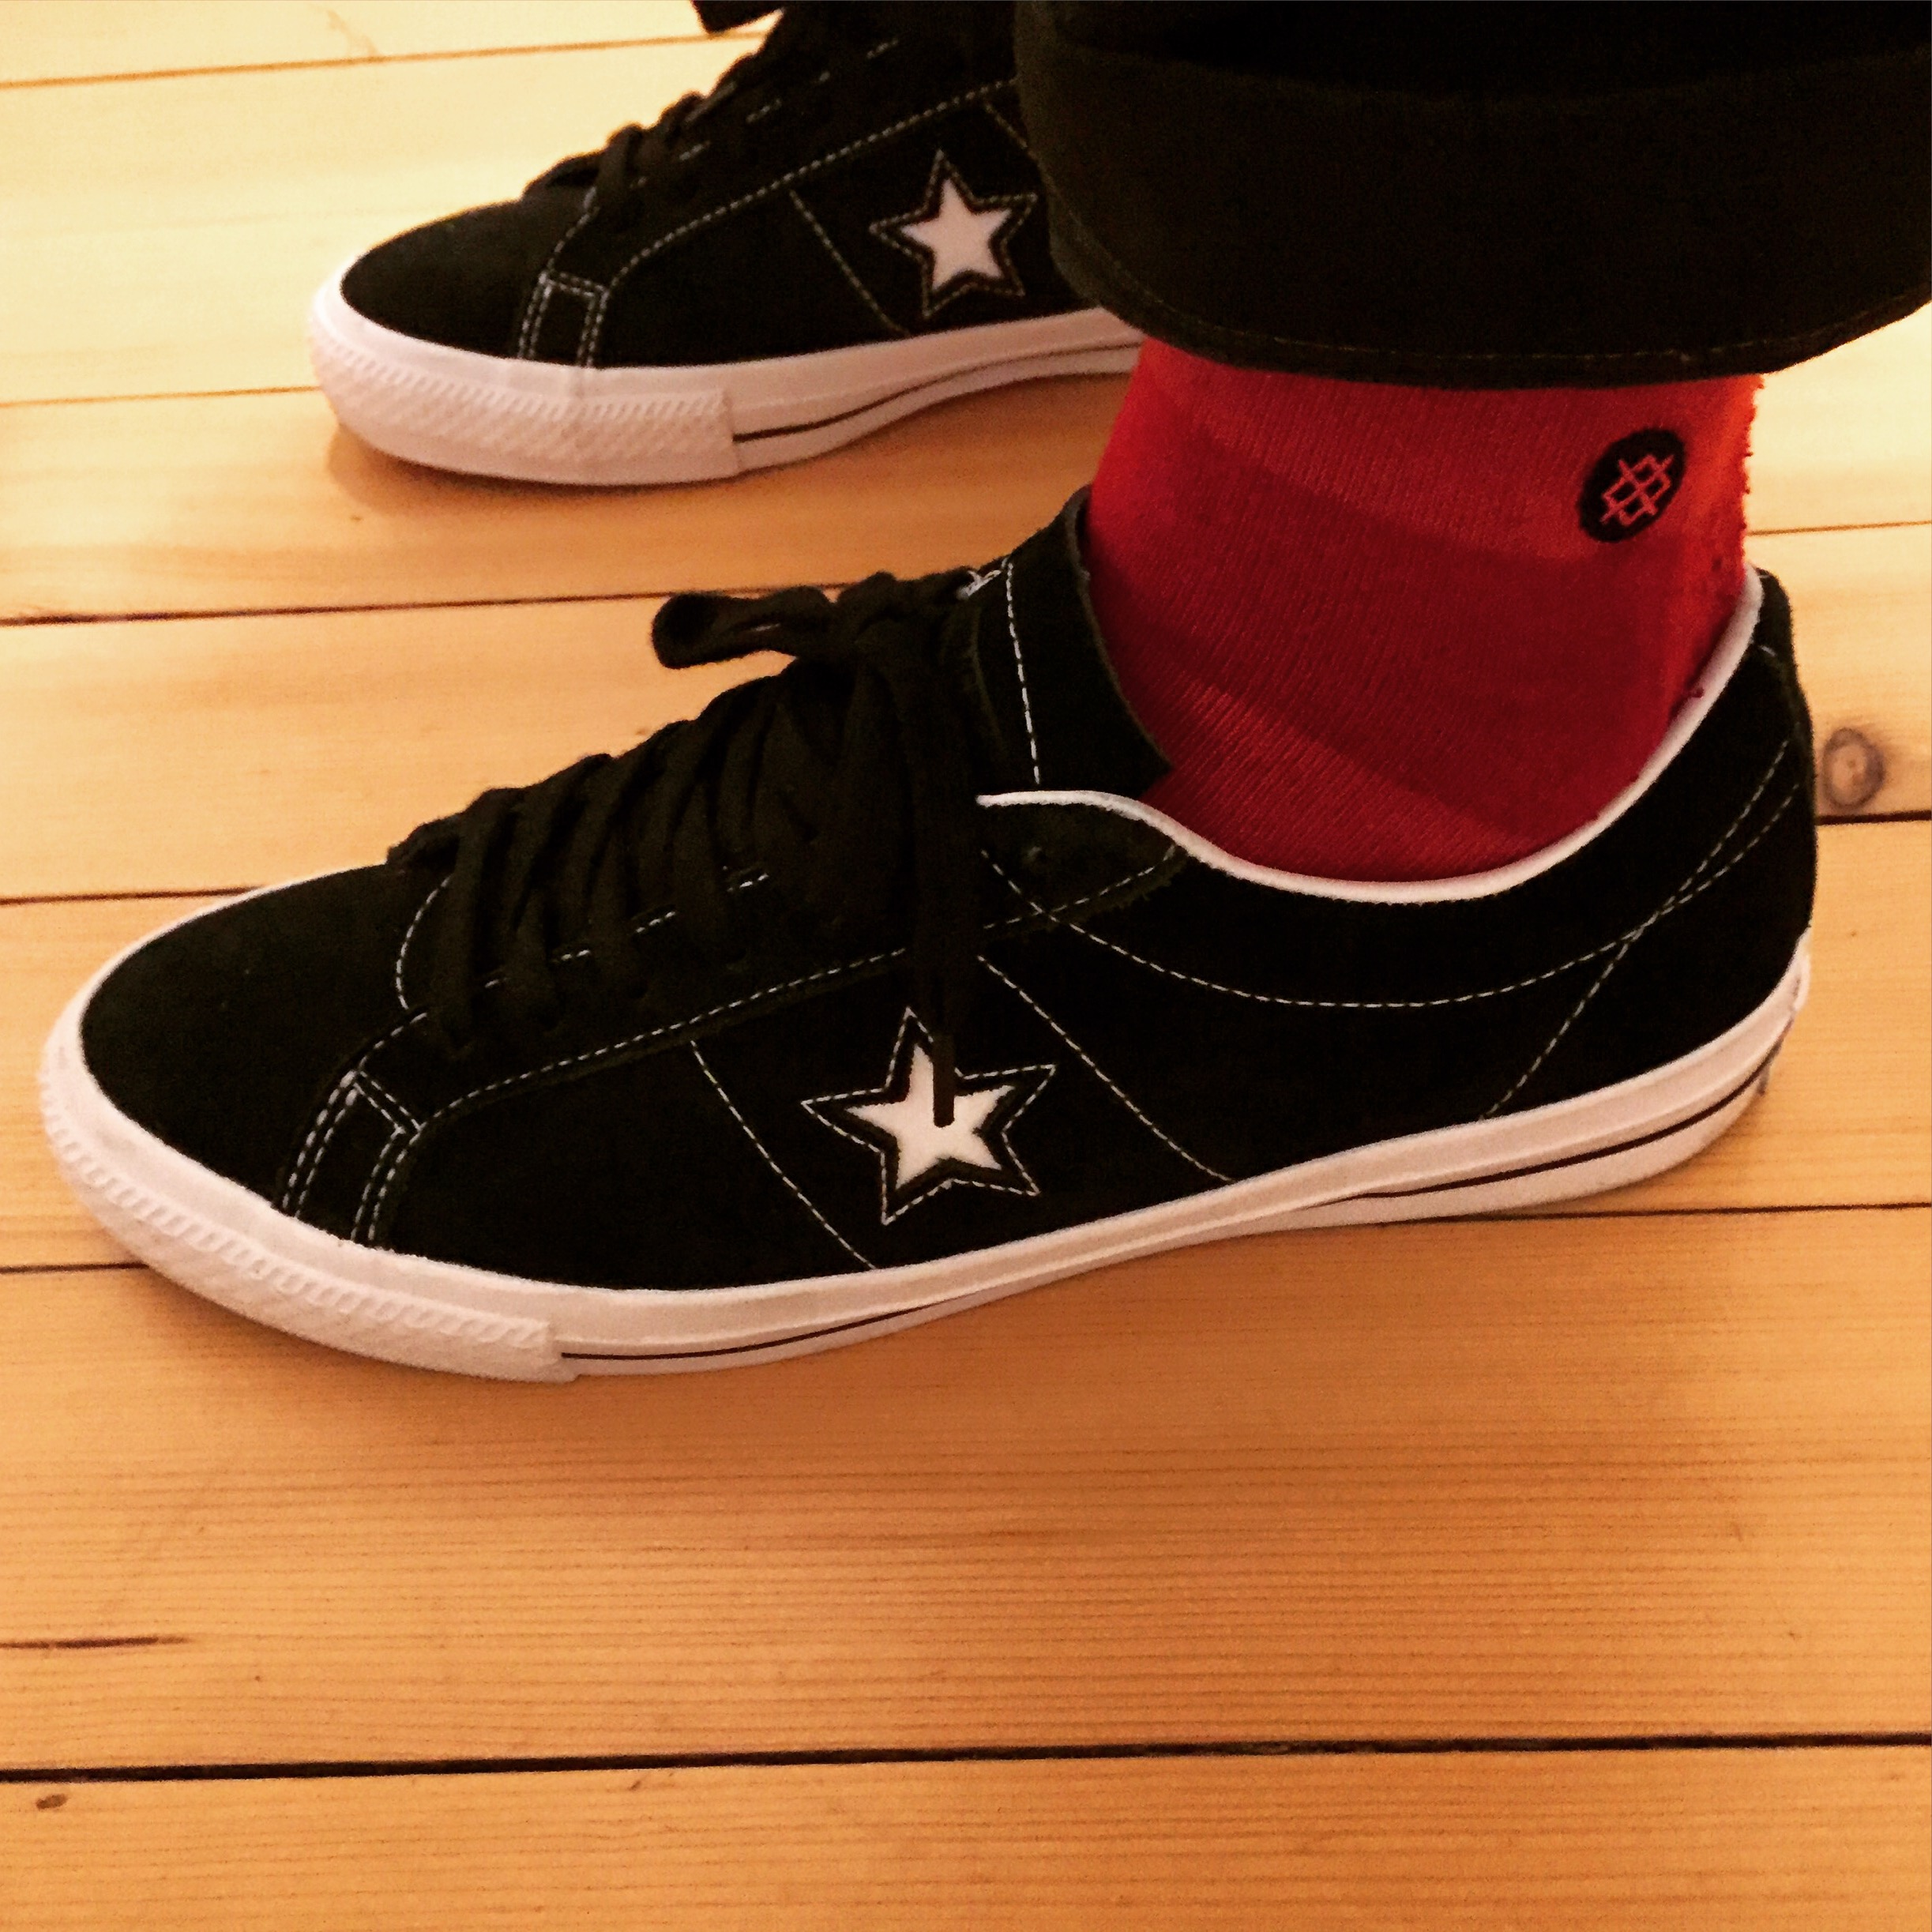 converse one star size 4